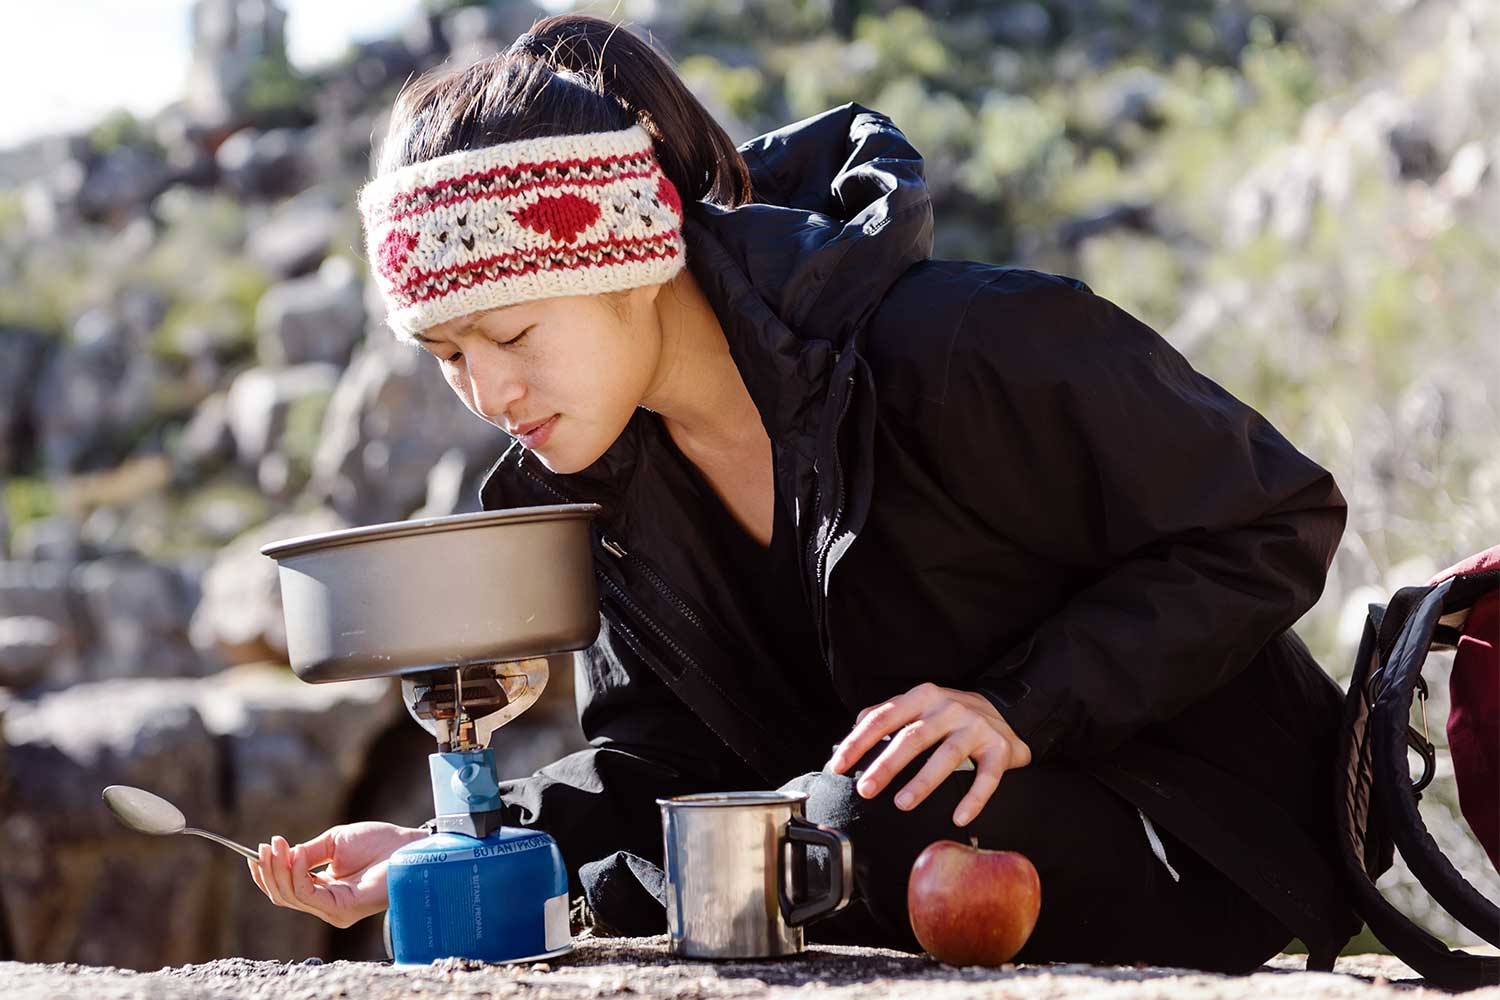 Woman cooking food on hiking stove.